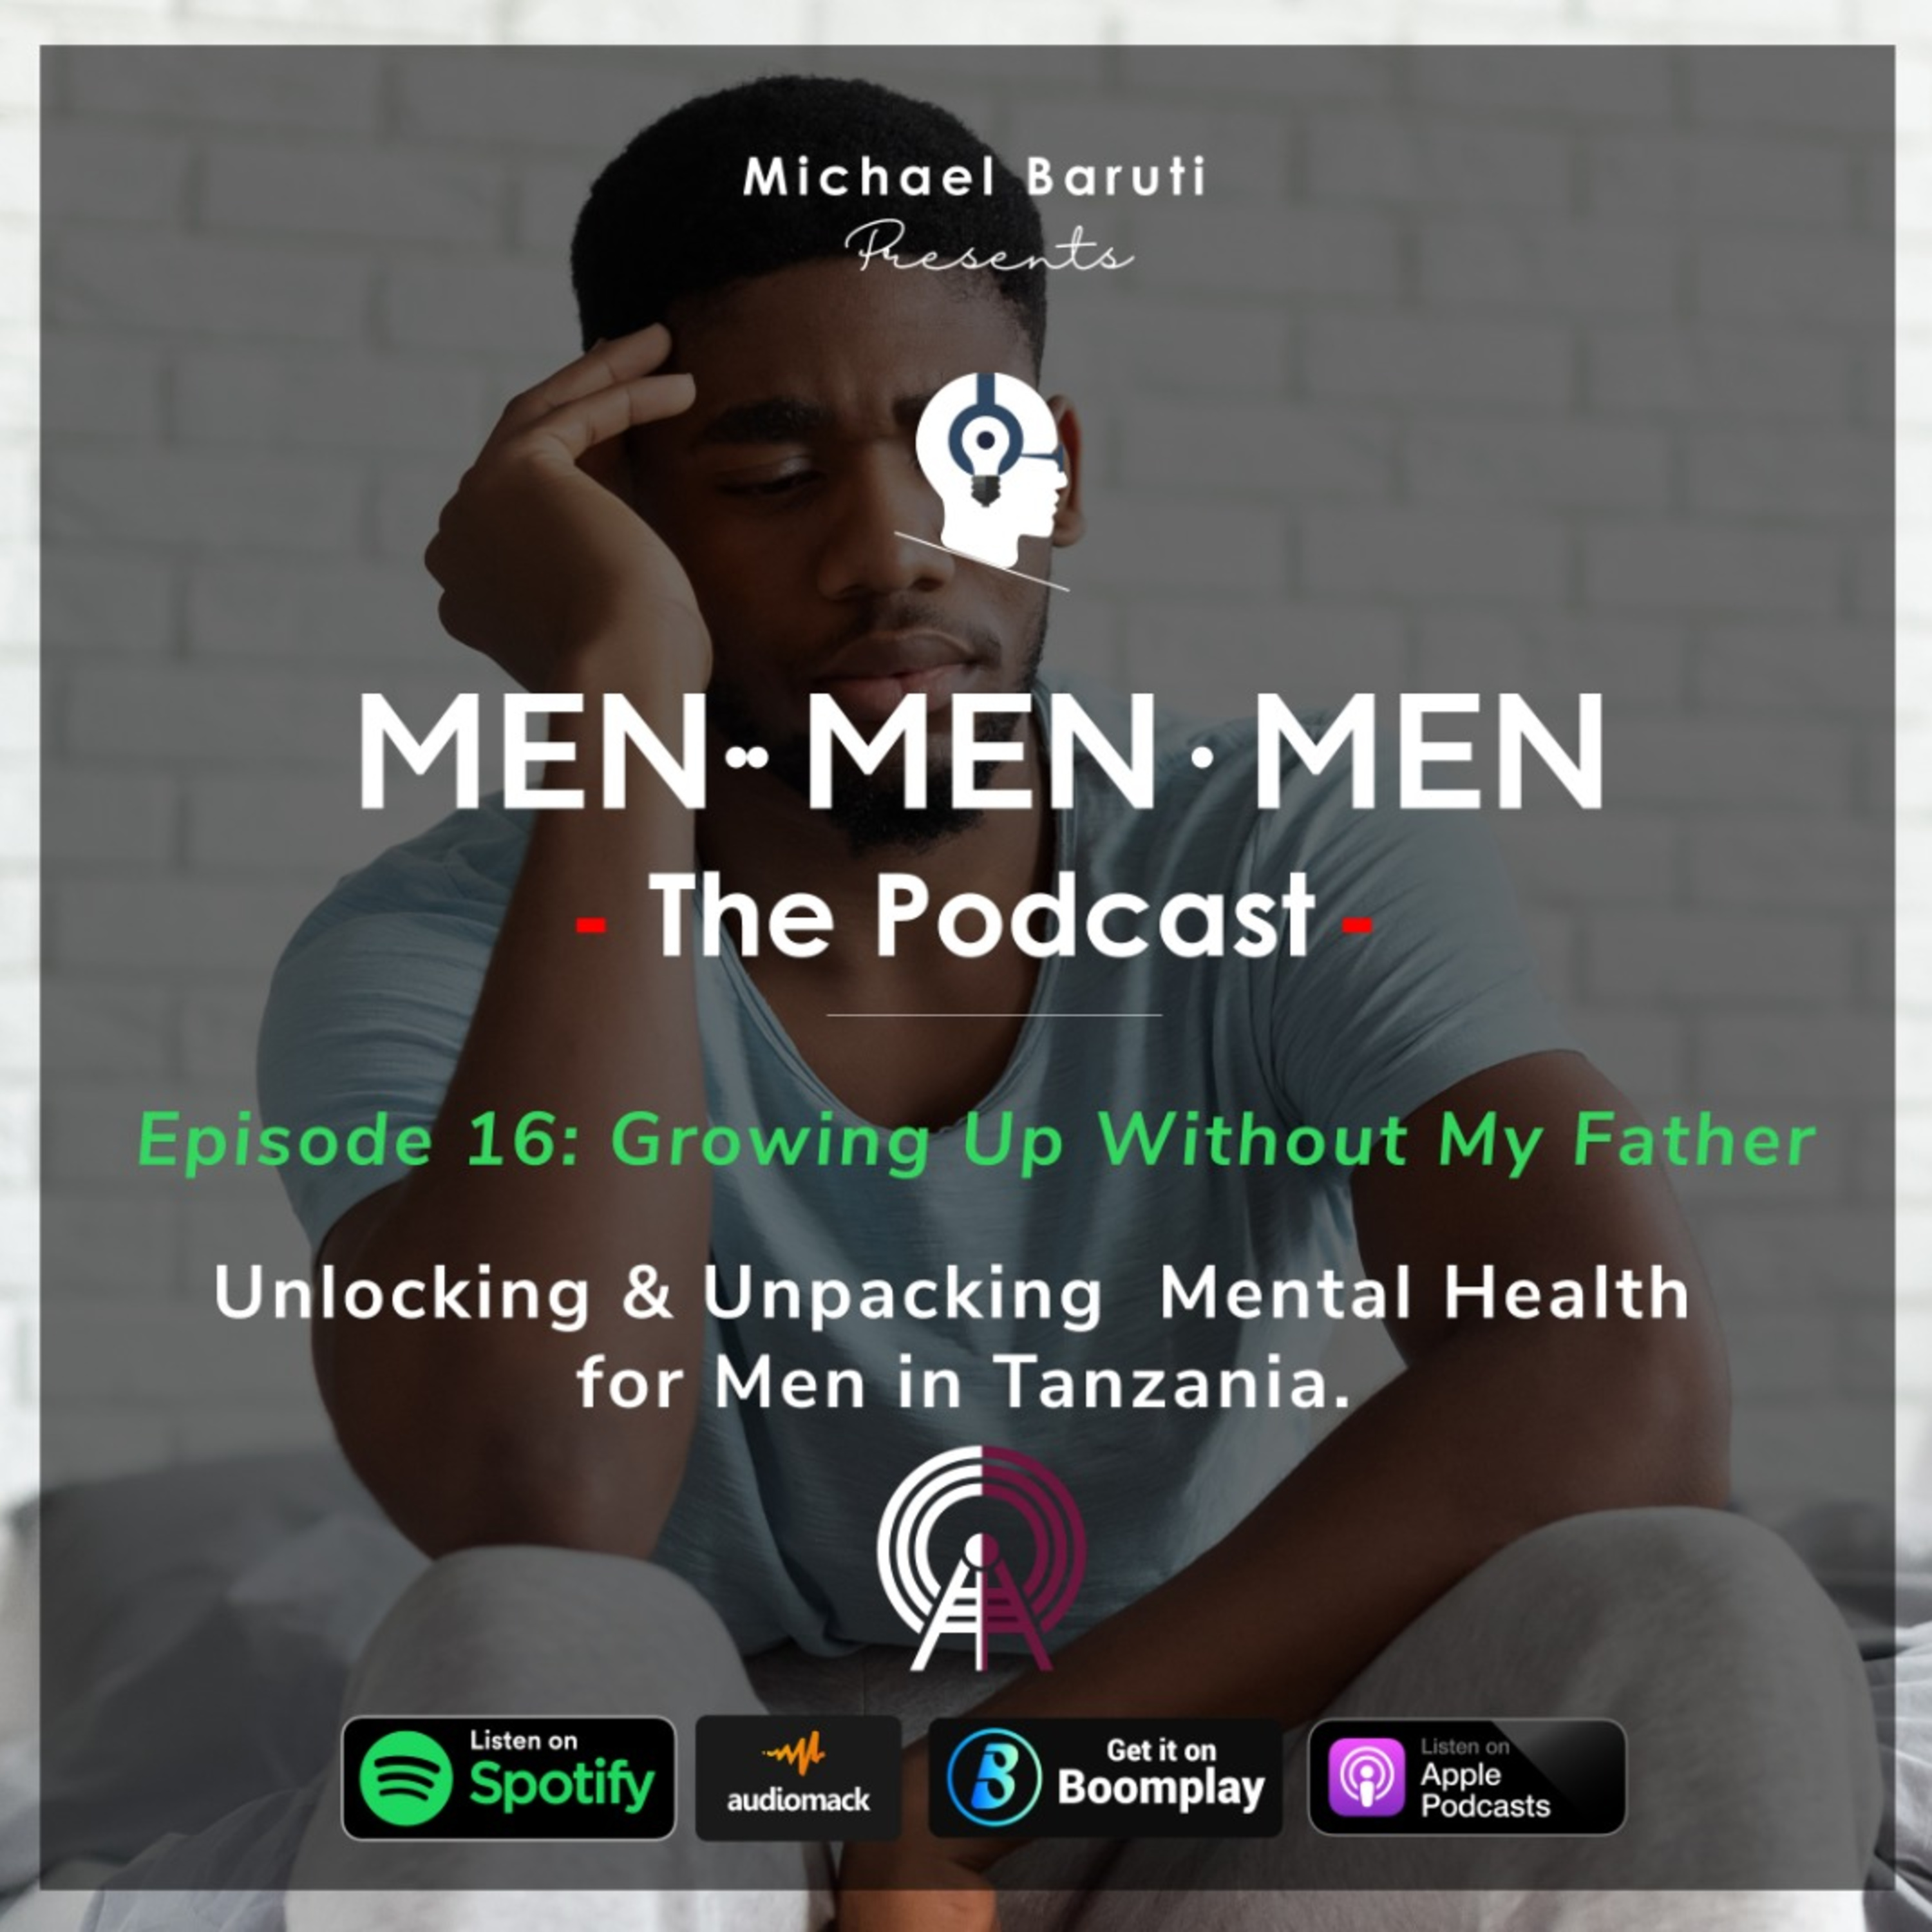 Men The Podcast - Ep 15 - Growing up without my Father